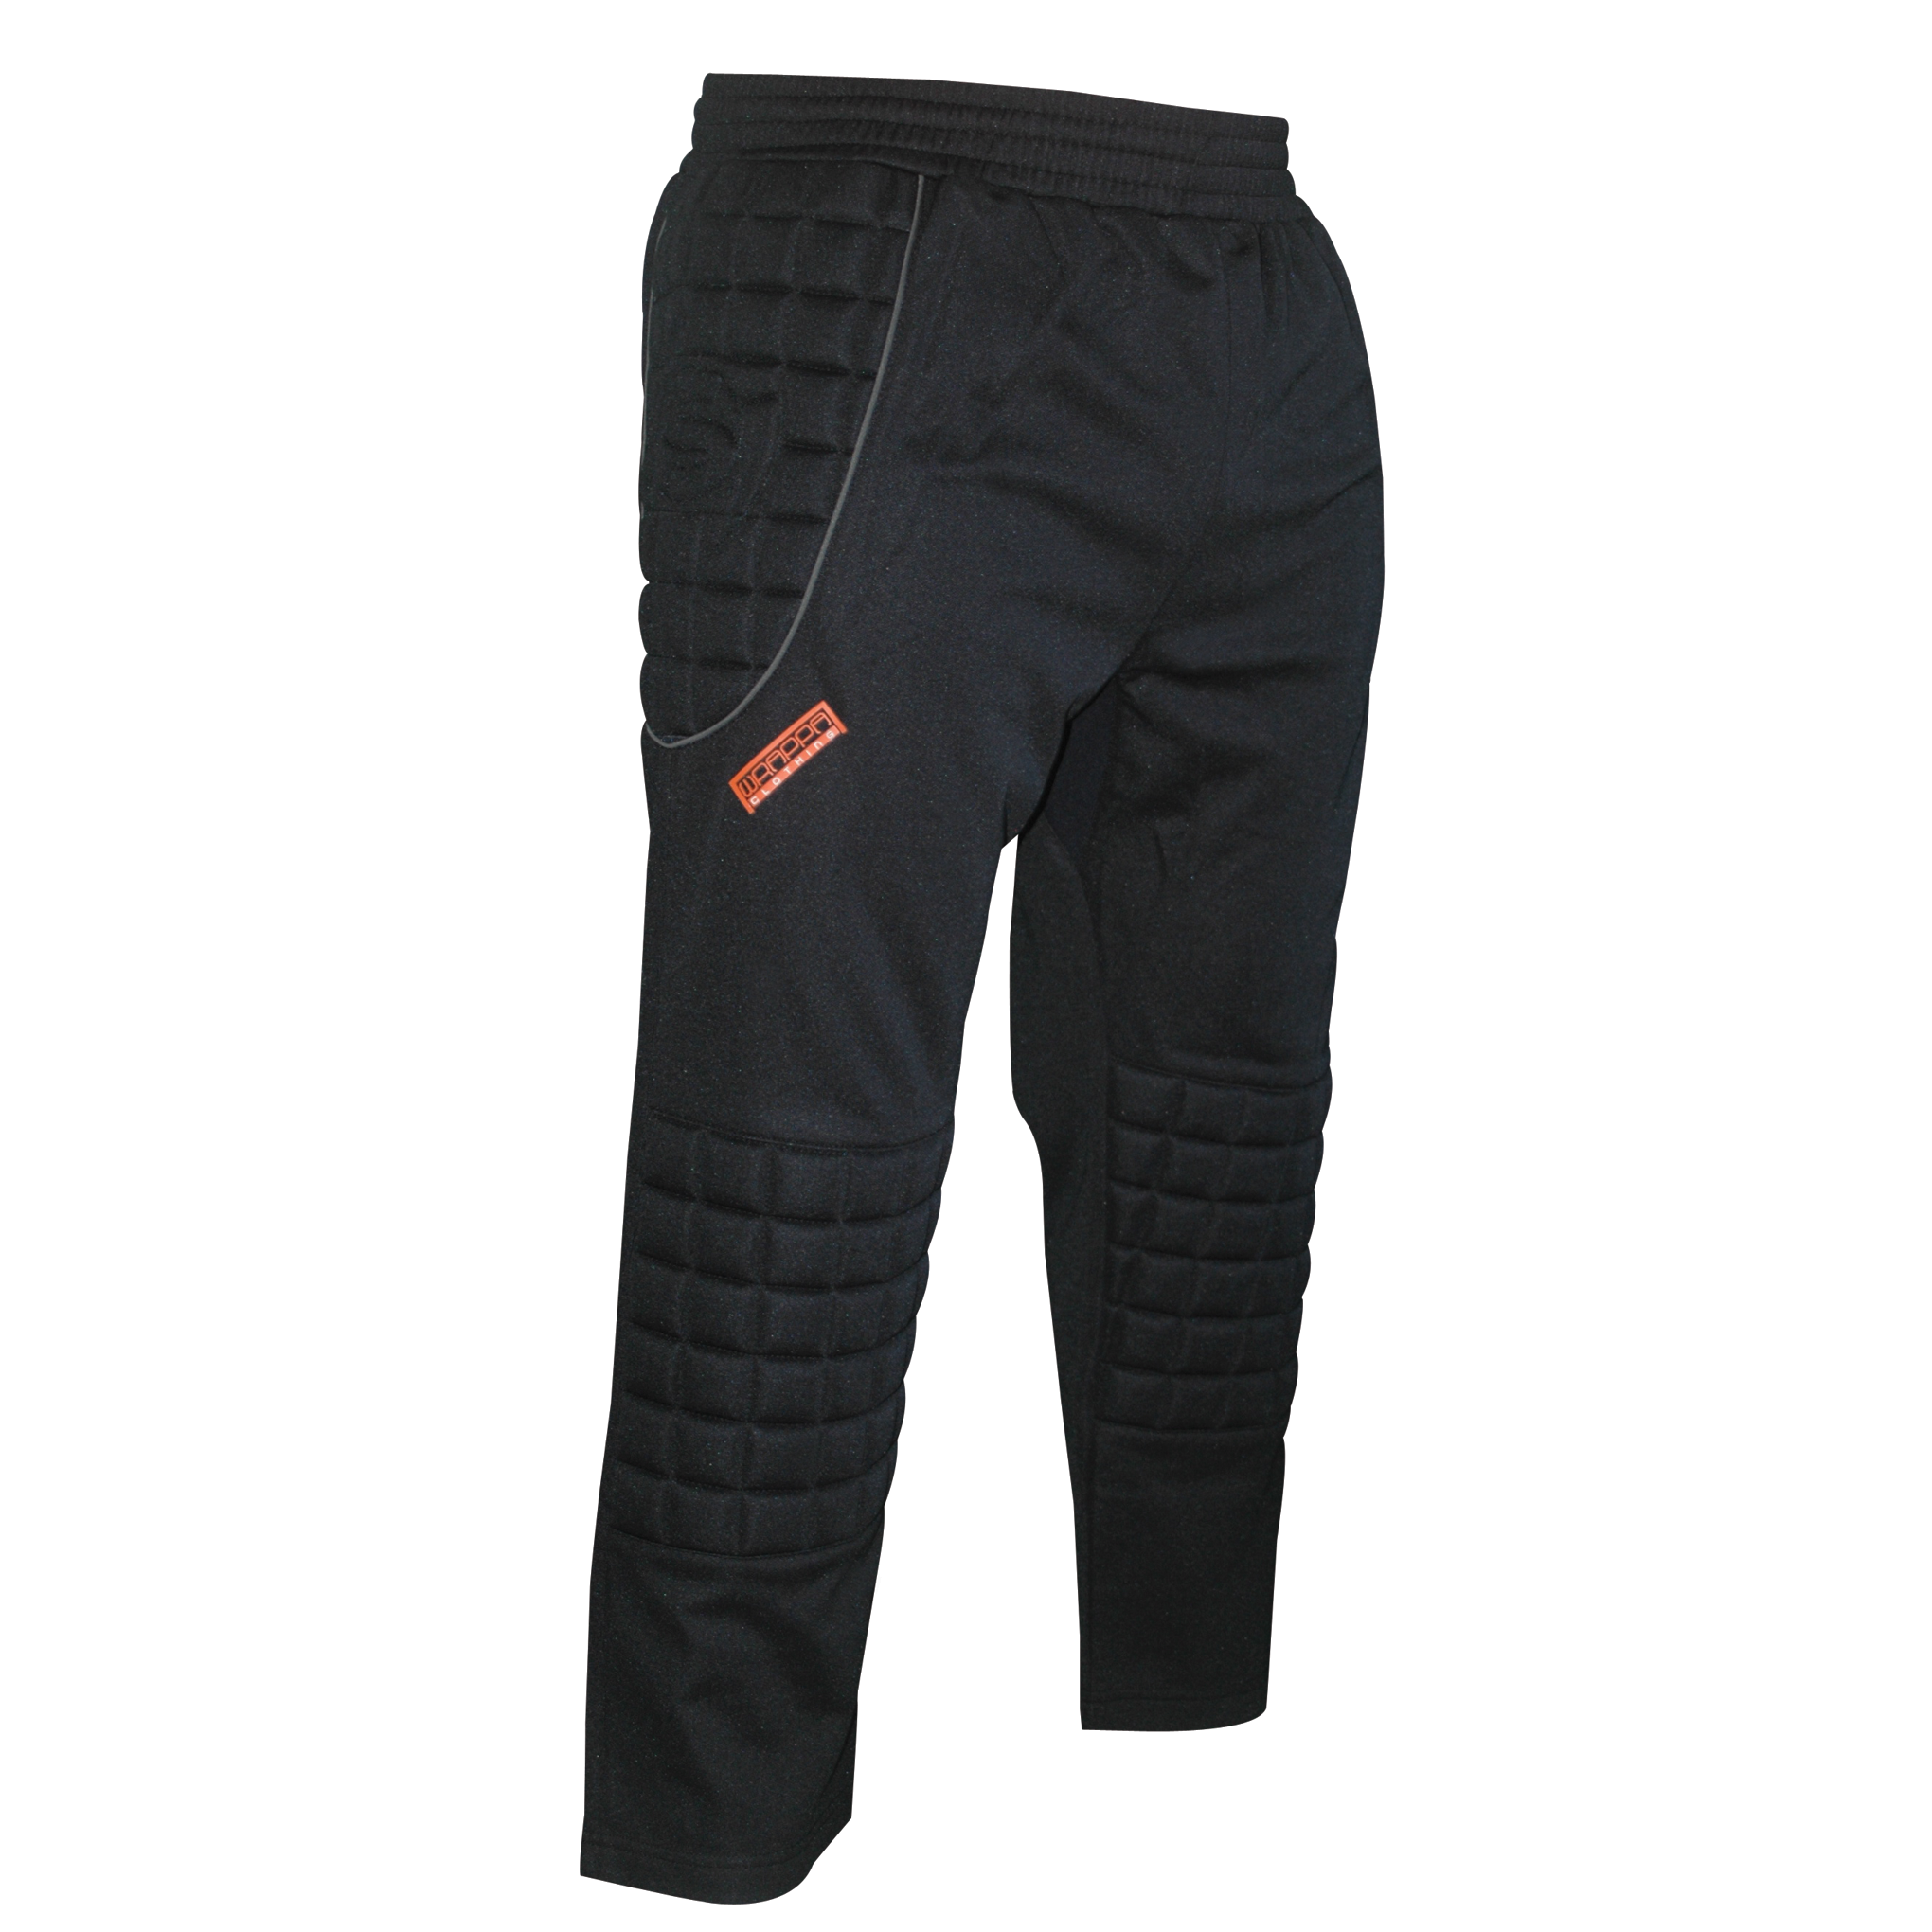 Trouser Png - Selsport-Wrappa-3/4-Goalkeeper-Trouser